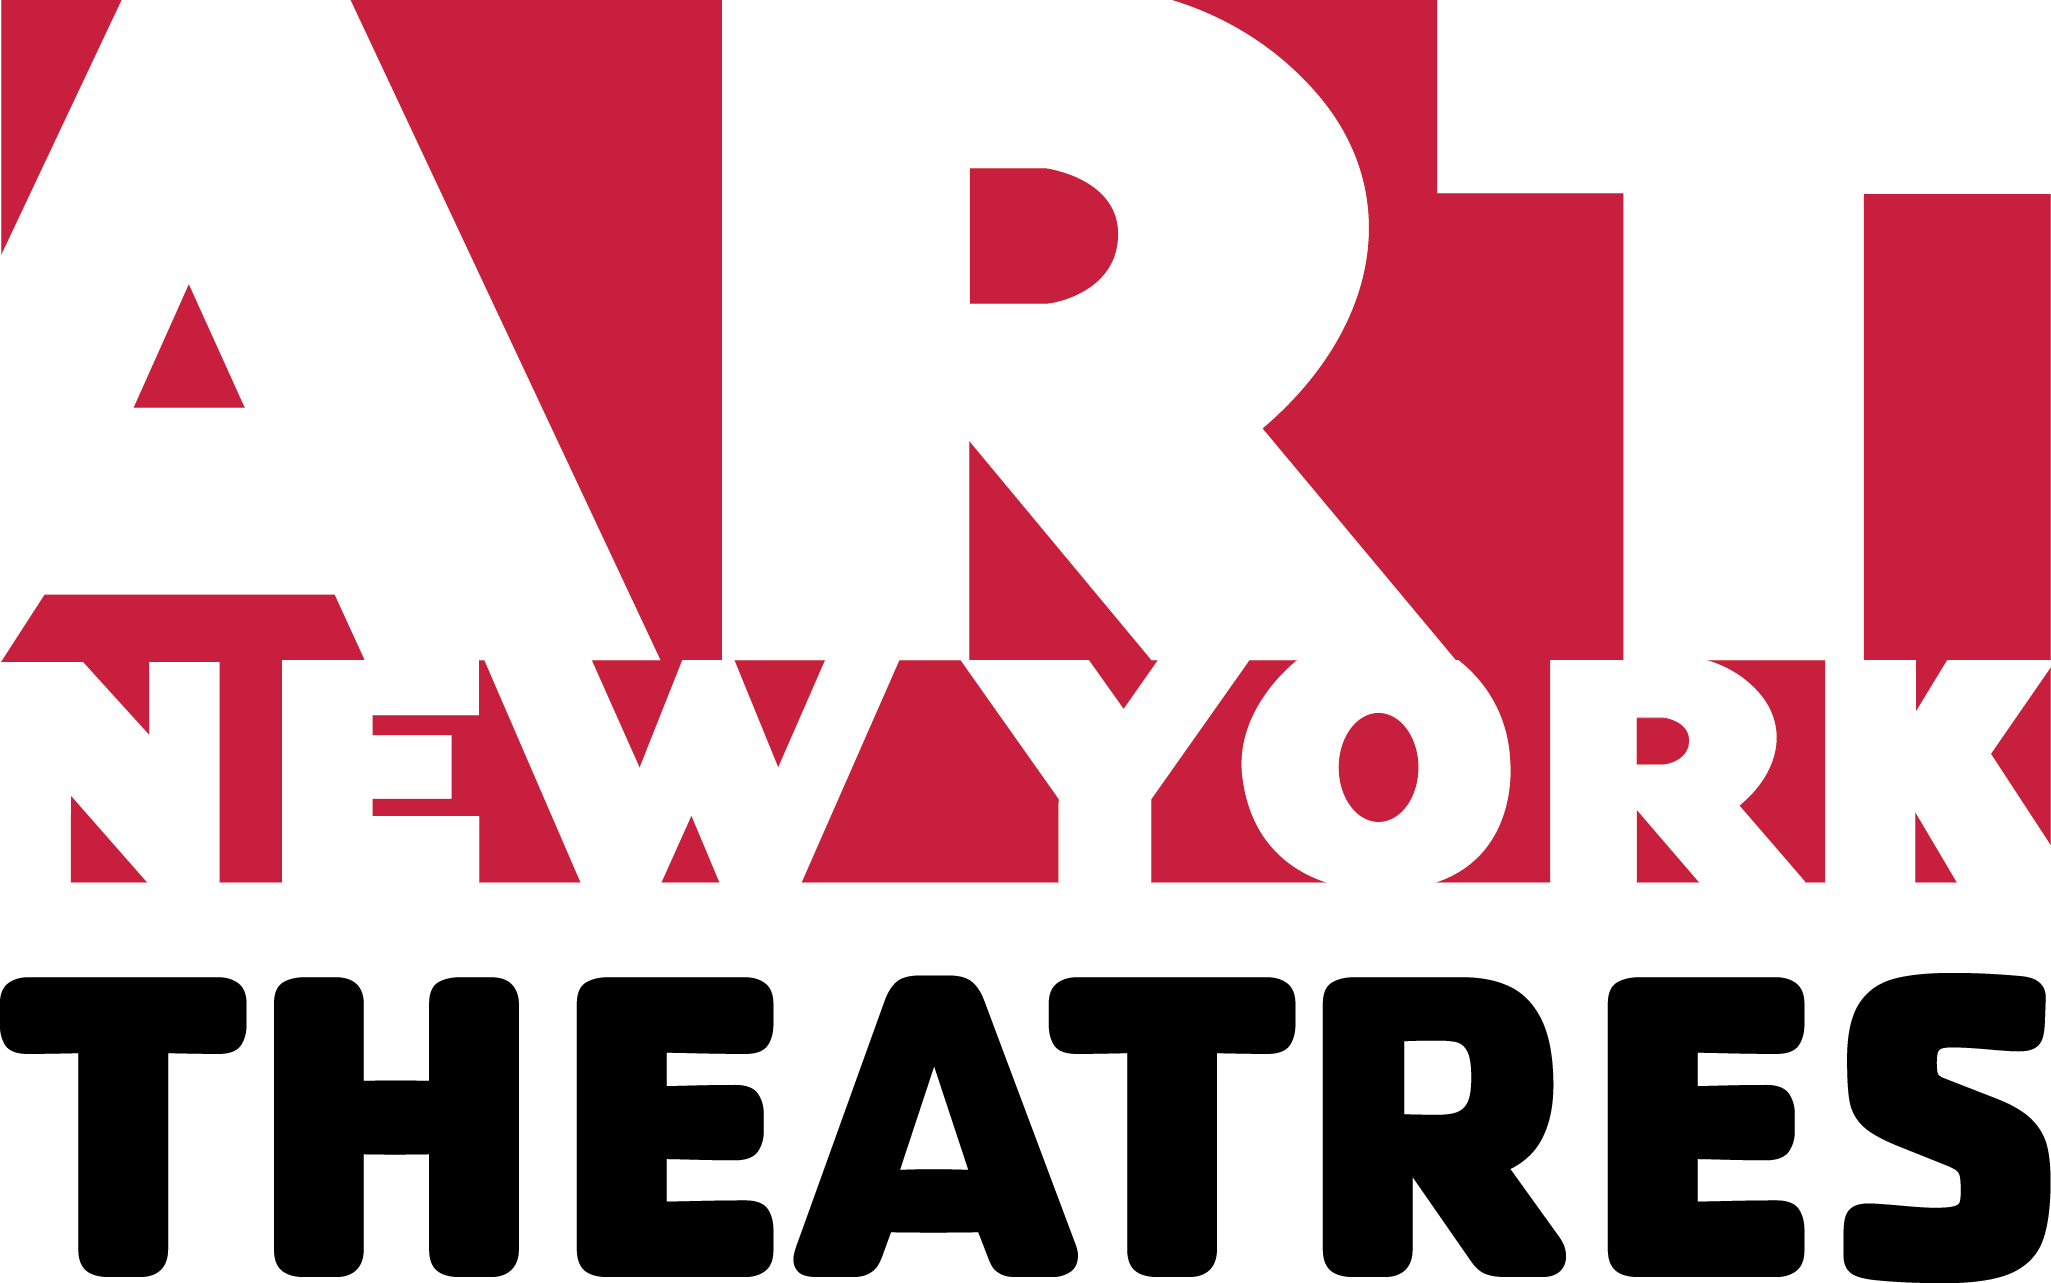 The ART/New York Theatres logo written in red, white, and black block letters.